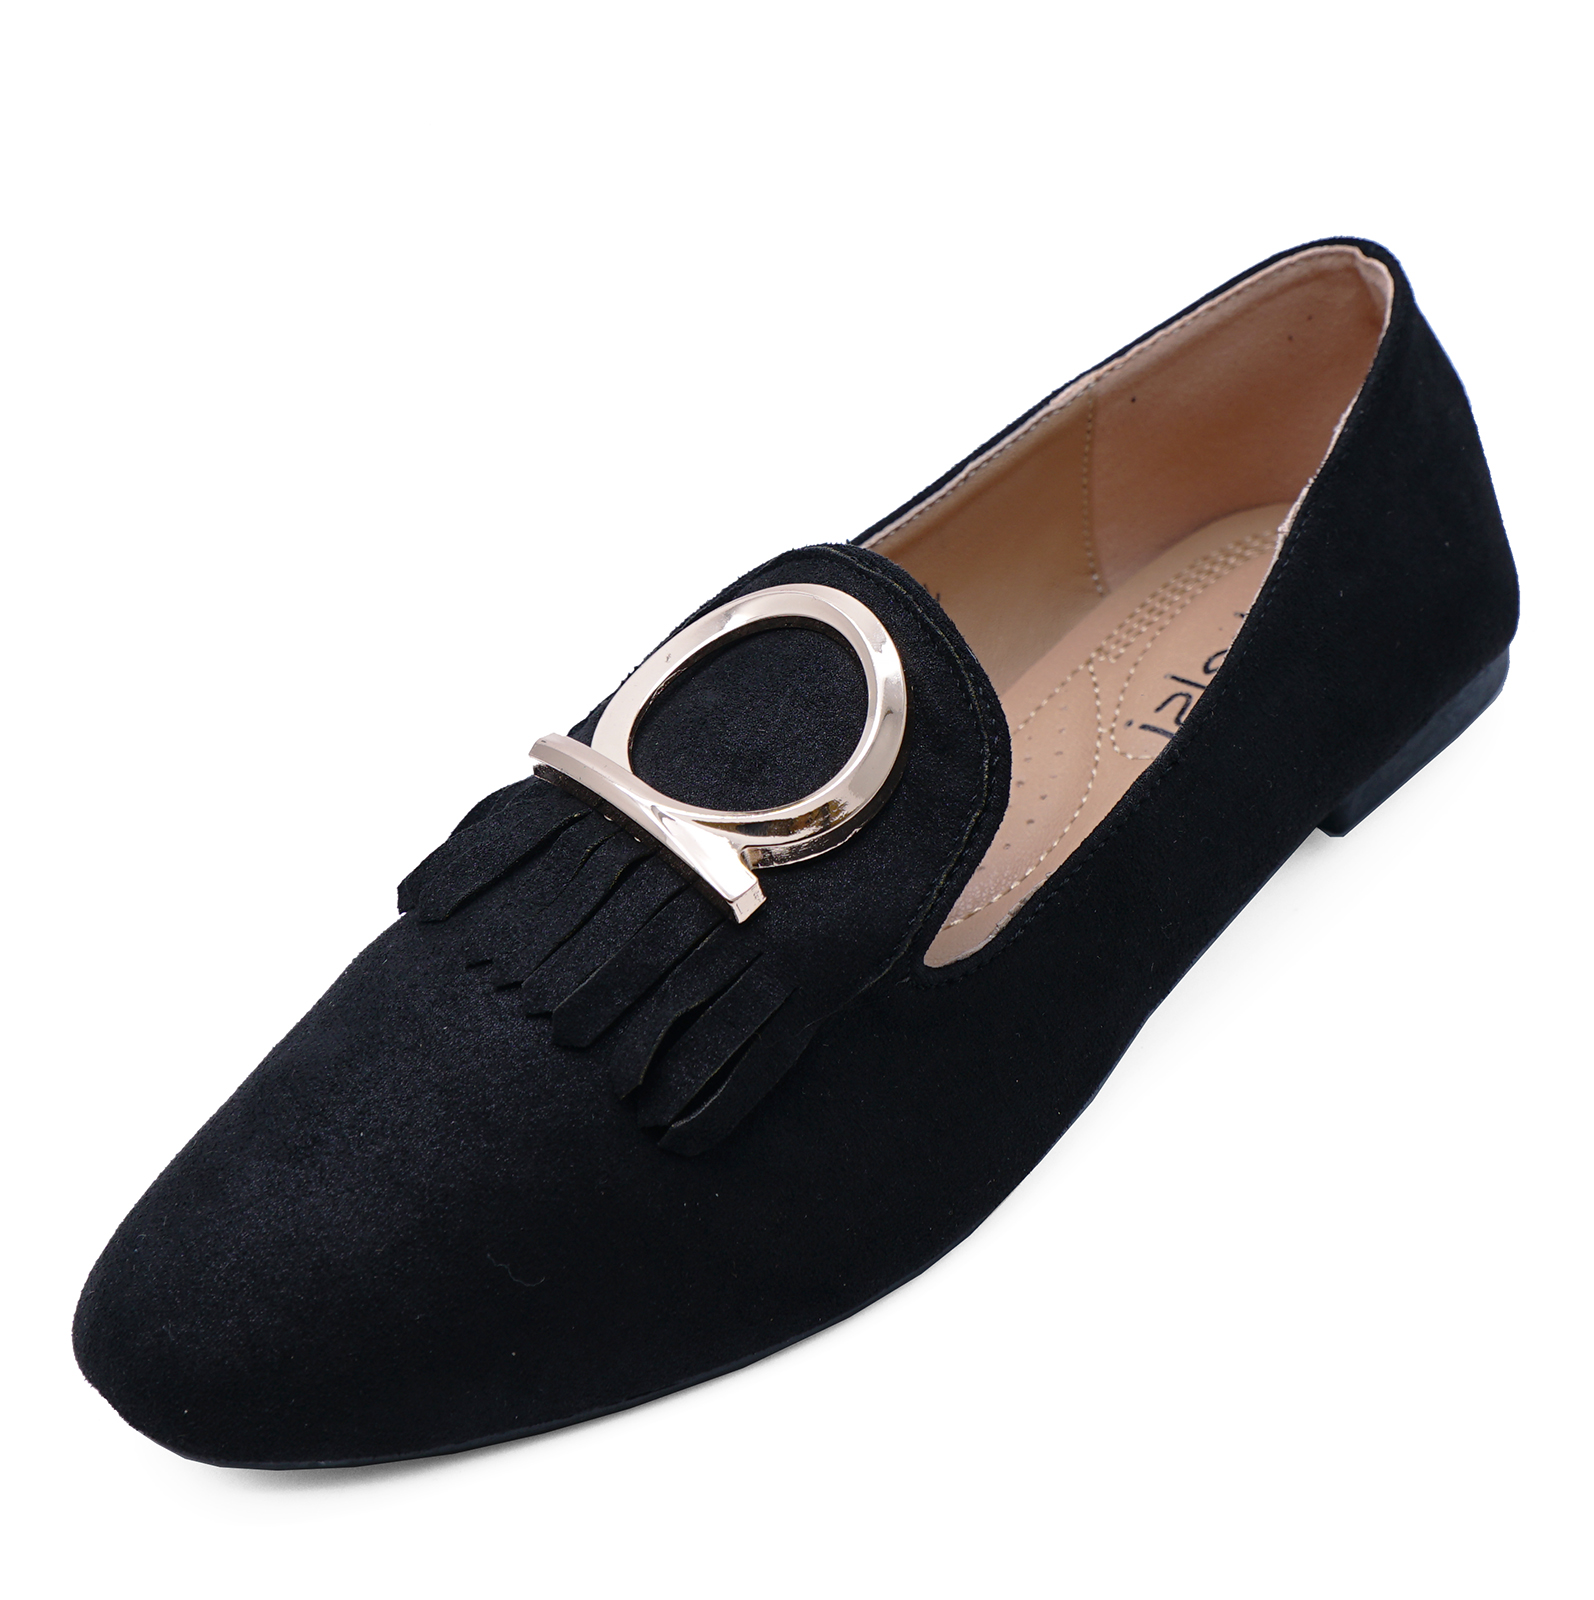 WOMENS BLACK FLAT SLIP-ON LOAFERS CASUAL FAUX SUEDE WORK SHOES PUMPS SIZES 3-8